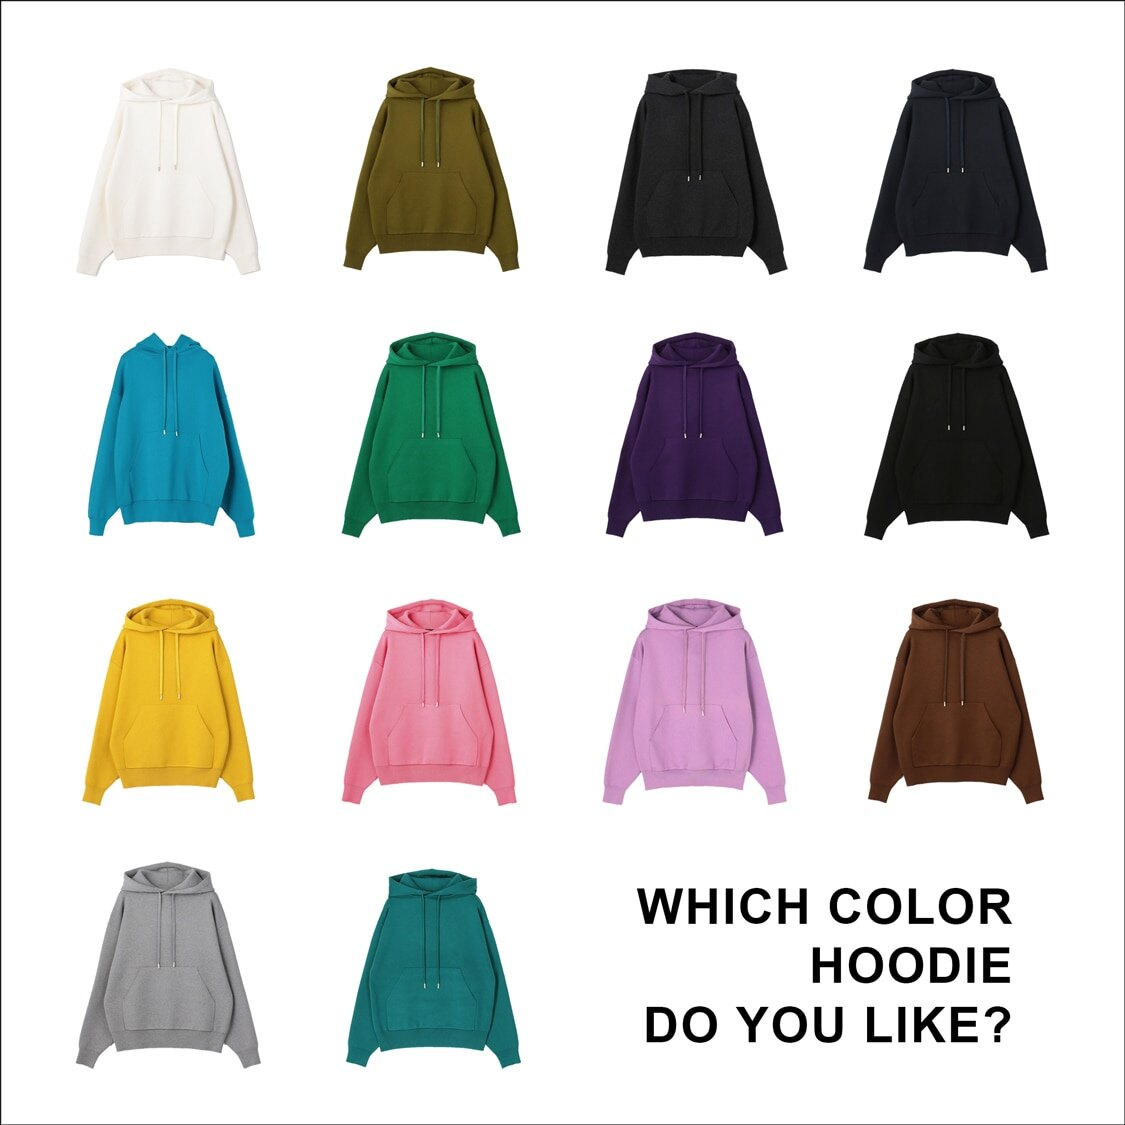 WHICH COLOR HOODIE DO YOU LIKE?